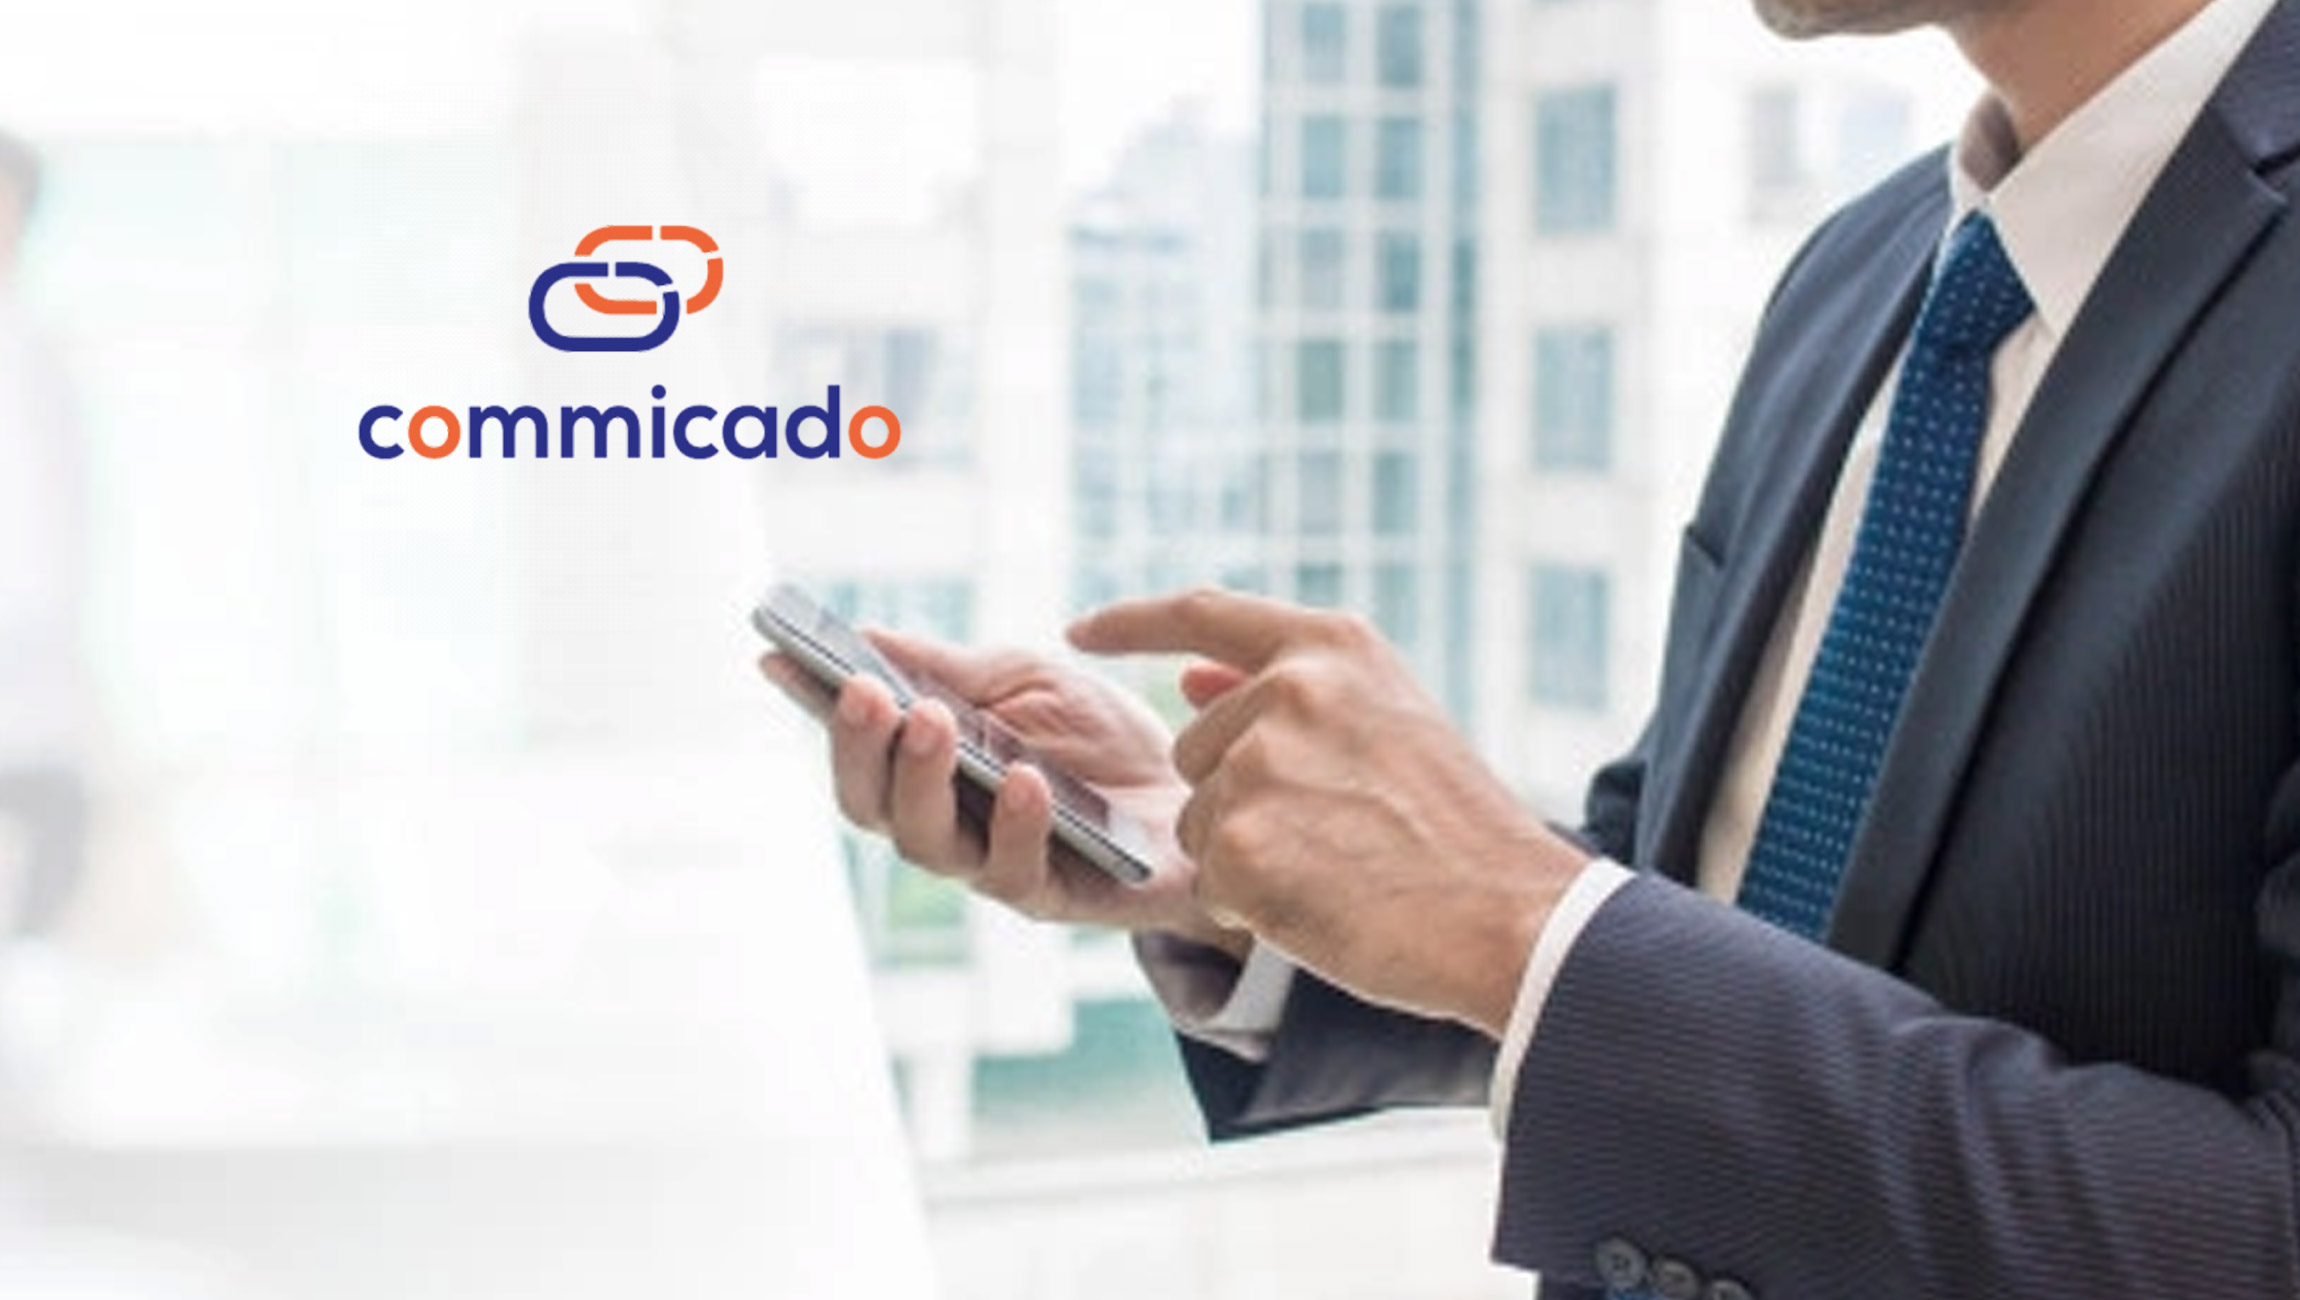 This-Indian-SaaS-Startup-is-All-Set-to-Disrupt-the-Unified-Customer-Communication-Space-Globally